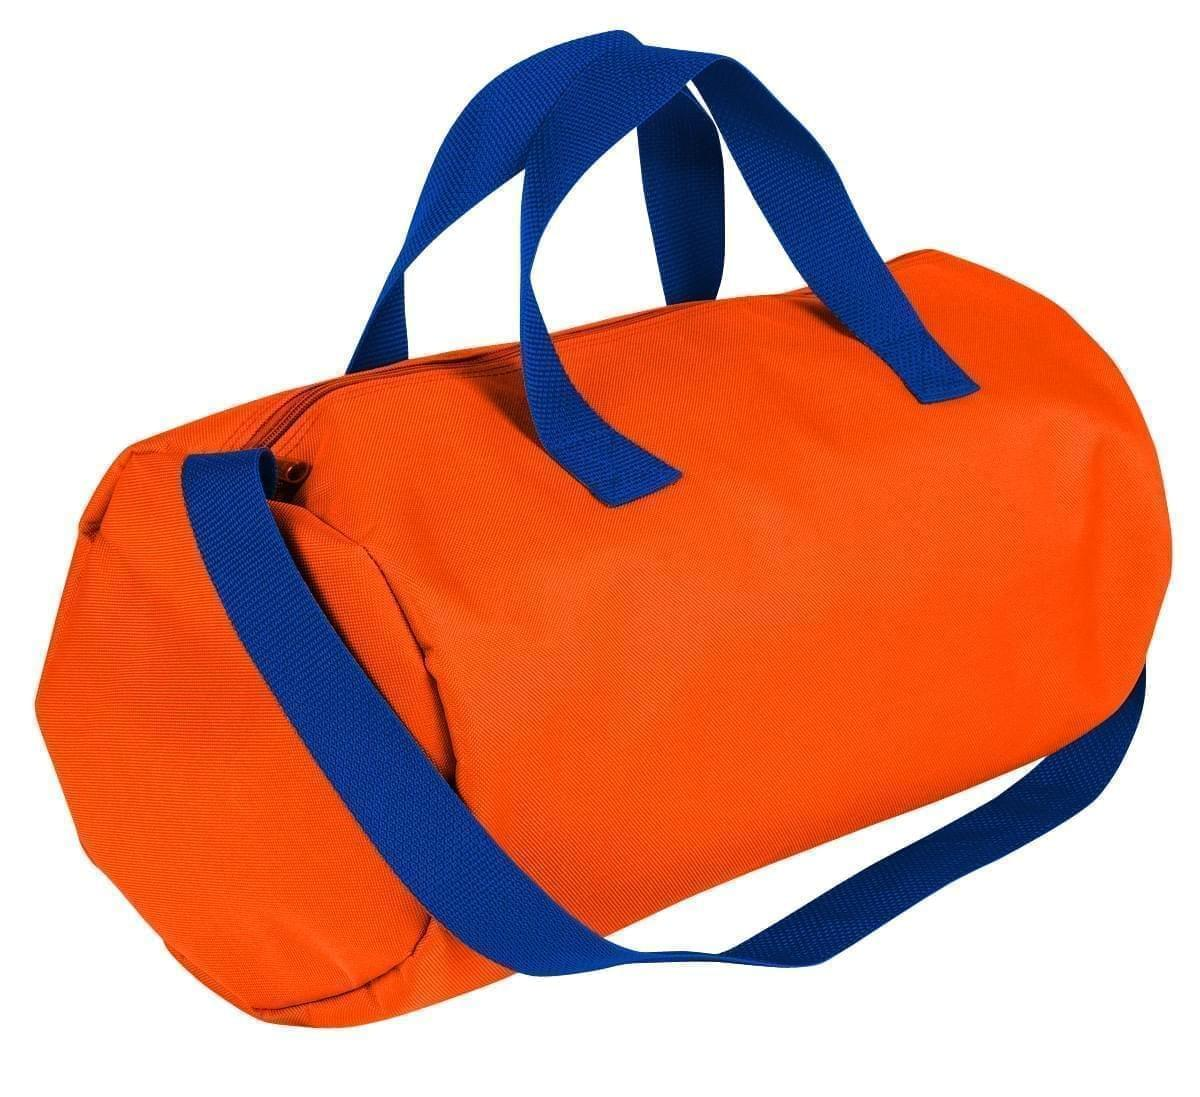 USA Made Nylon Poly Gym Roll Bags, Orange-Royal Blue, ROCX31AAX3